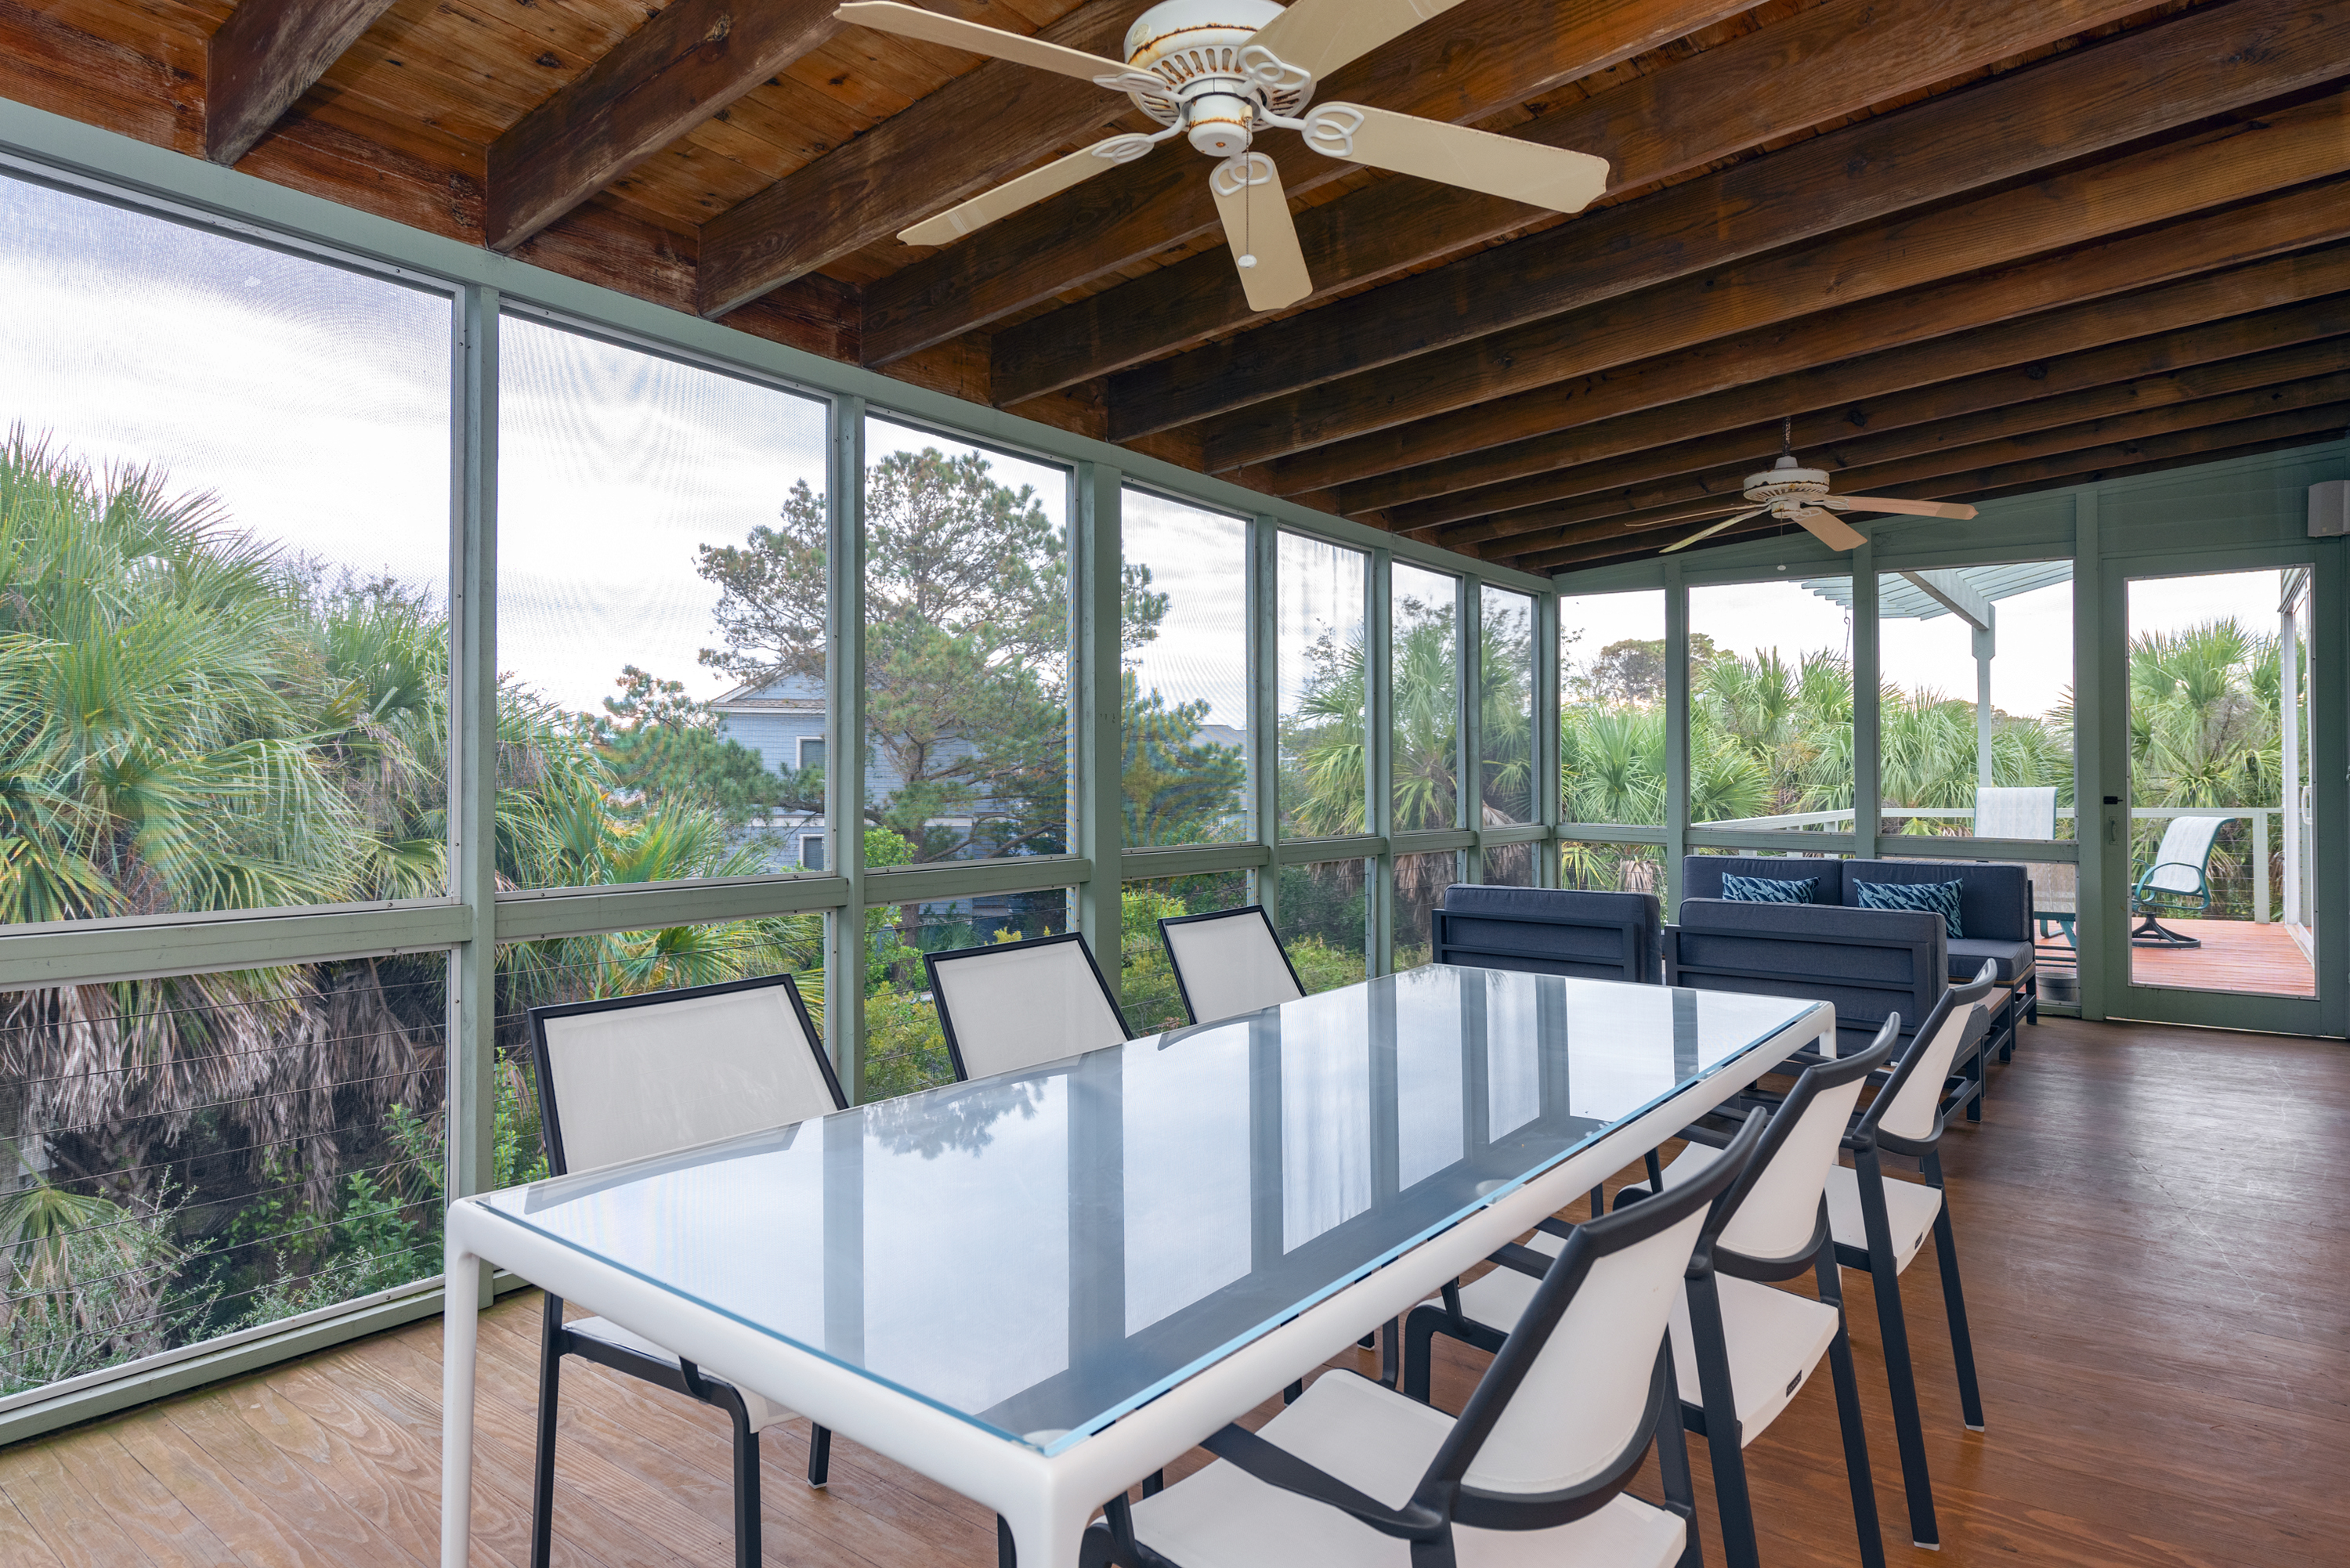 Scenic al fresco dining and conversation seating on the screened porch